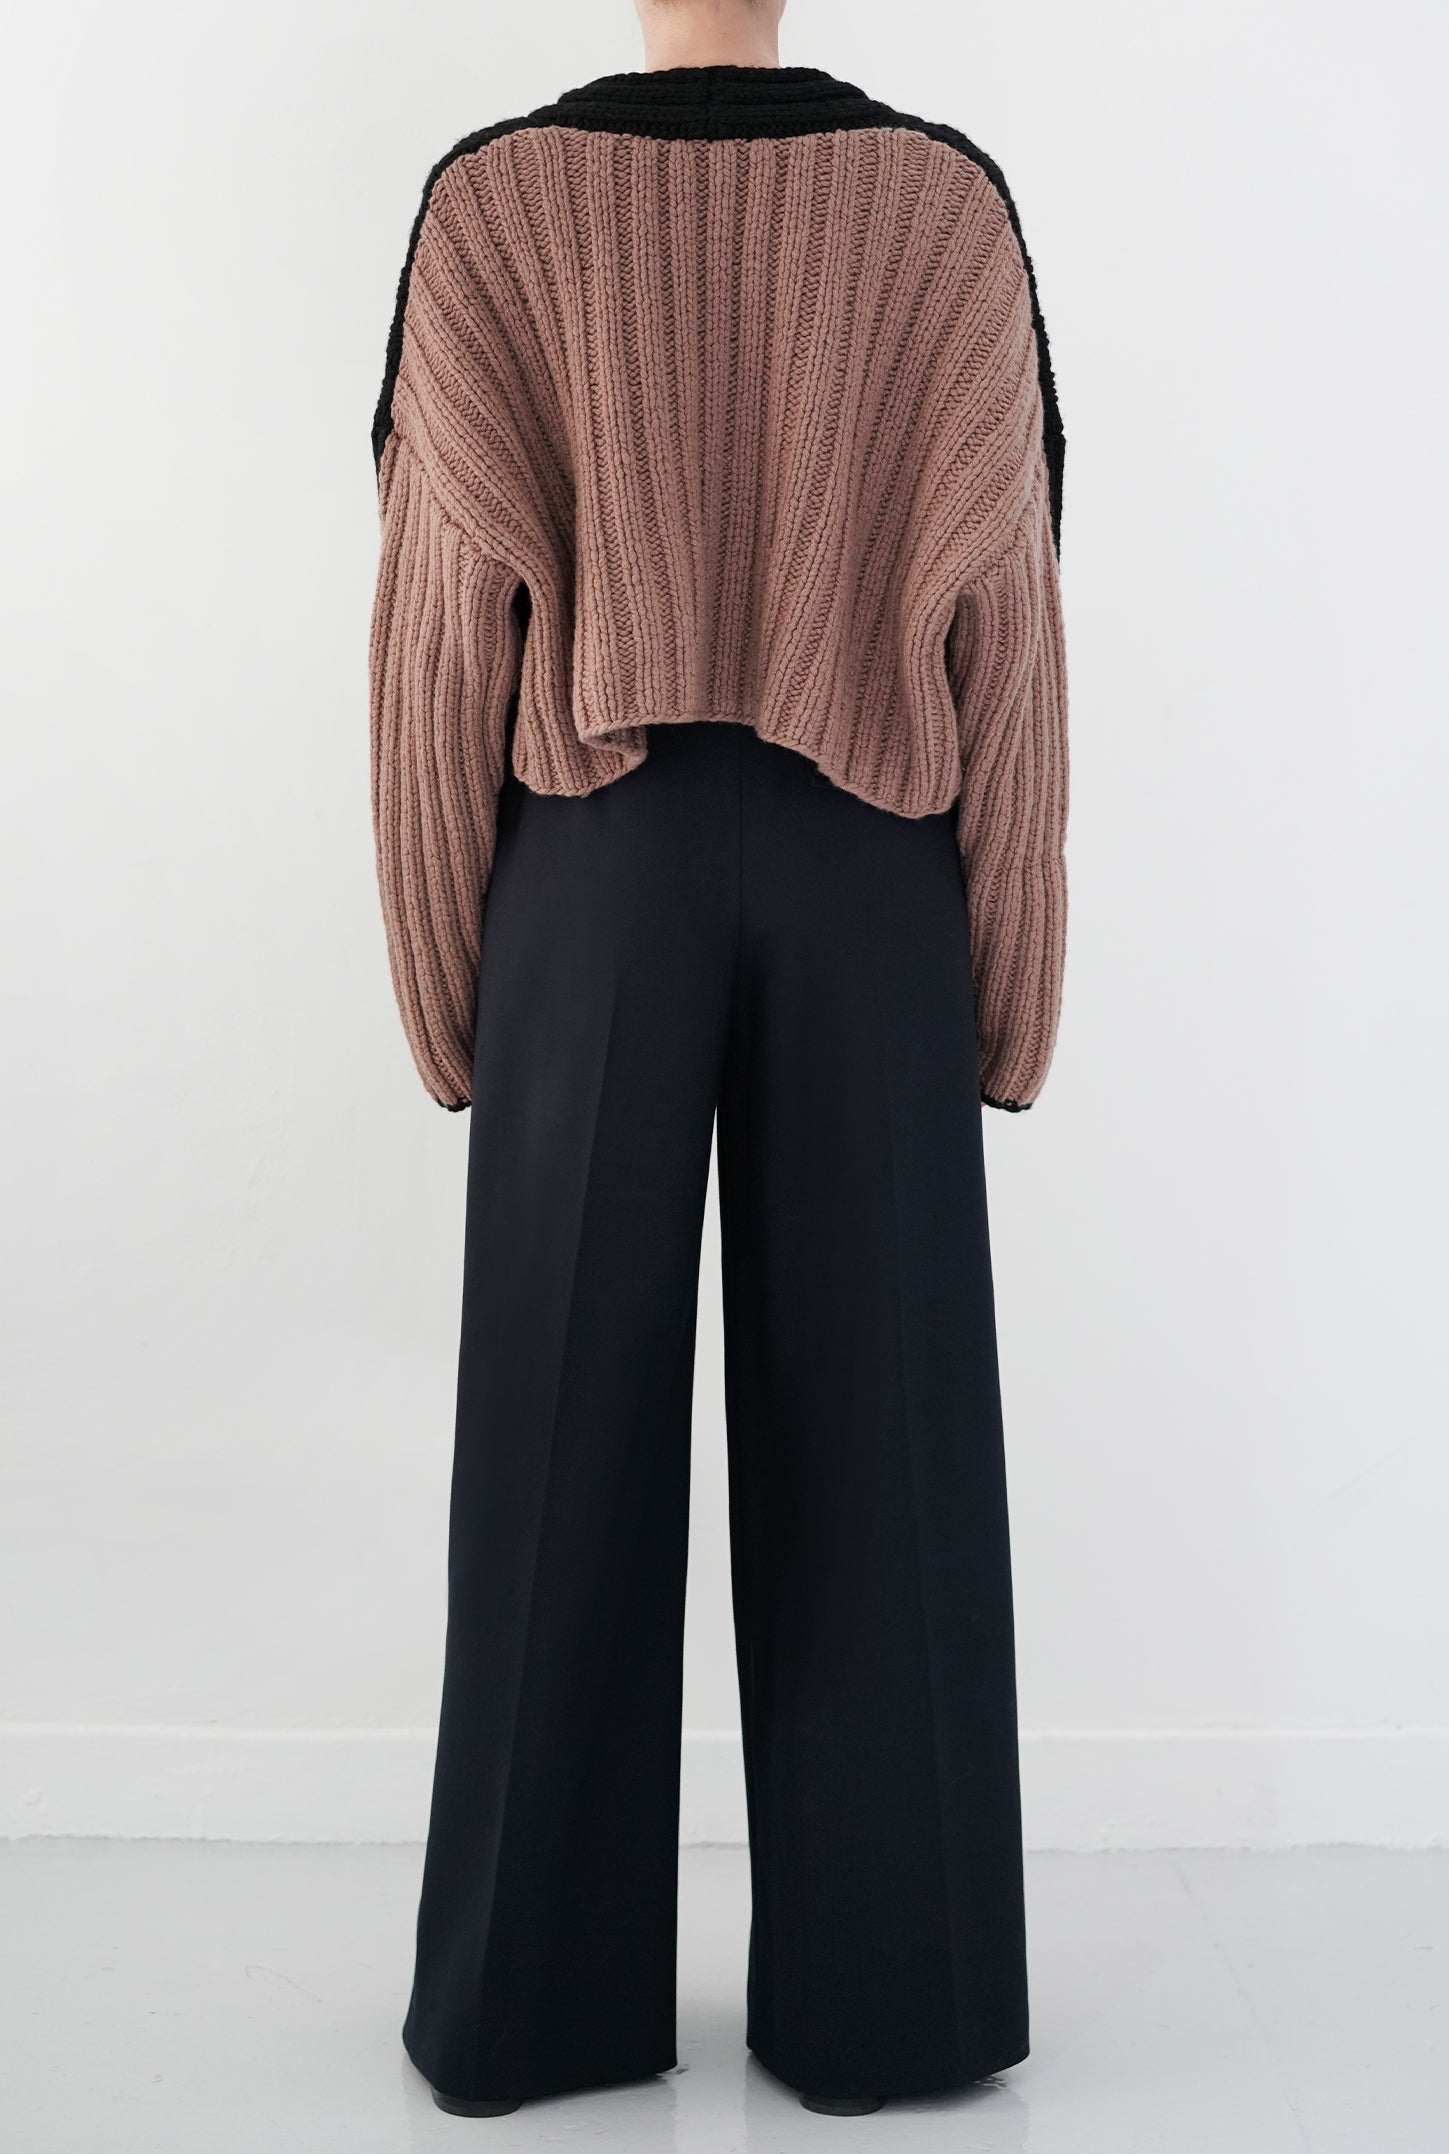 Black/Blush Tate Sweater